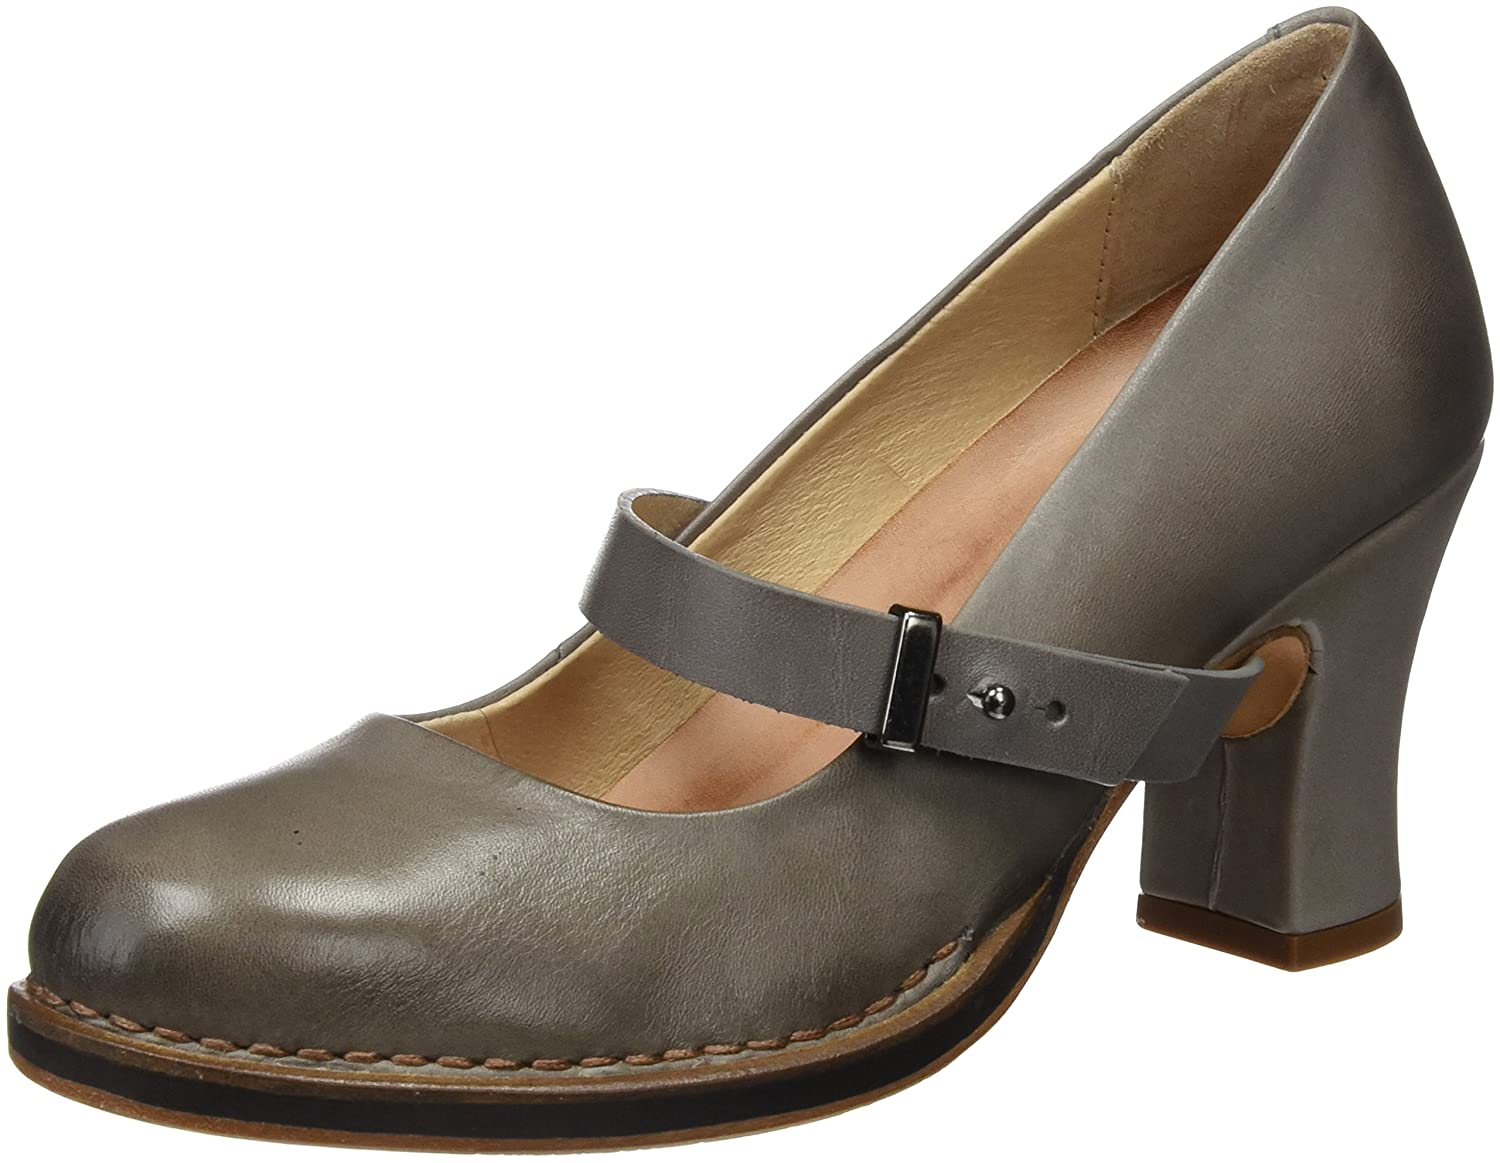 Neosens Women's S279 Restored Skin Vetiver/Baladi Closed Toe Heels Shopping Online Outlet Sale I850cT8k